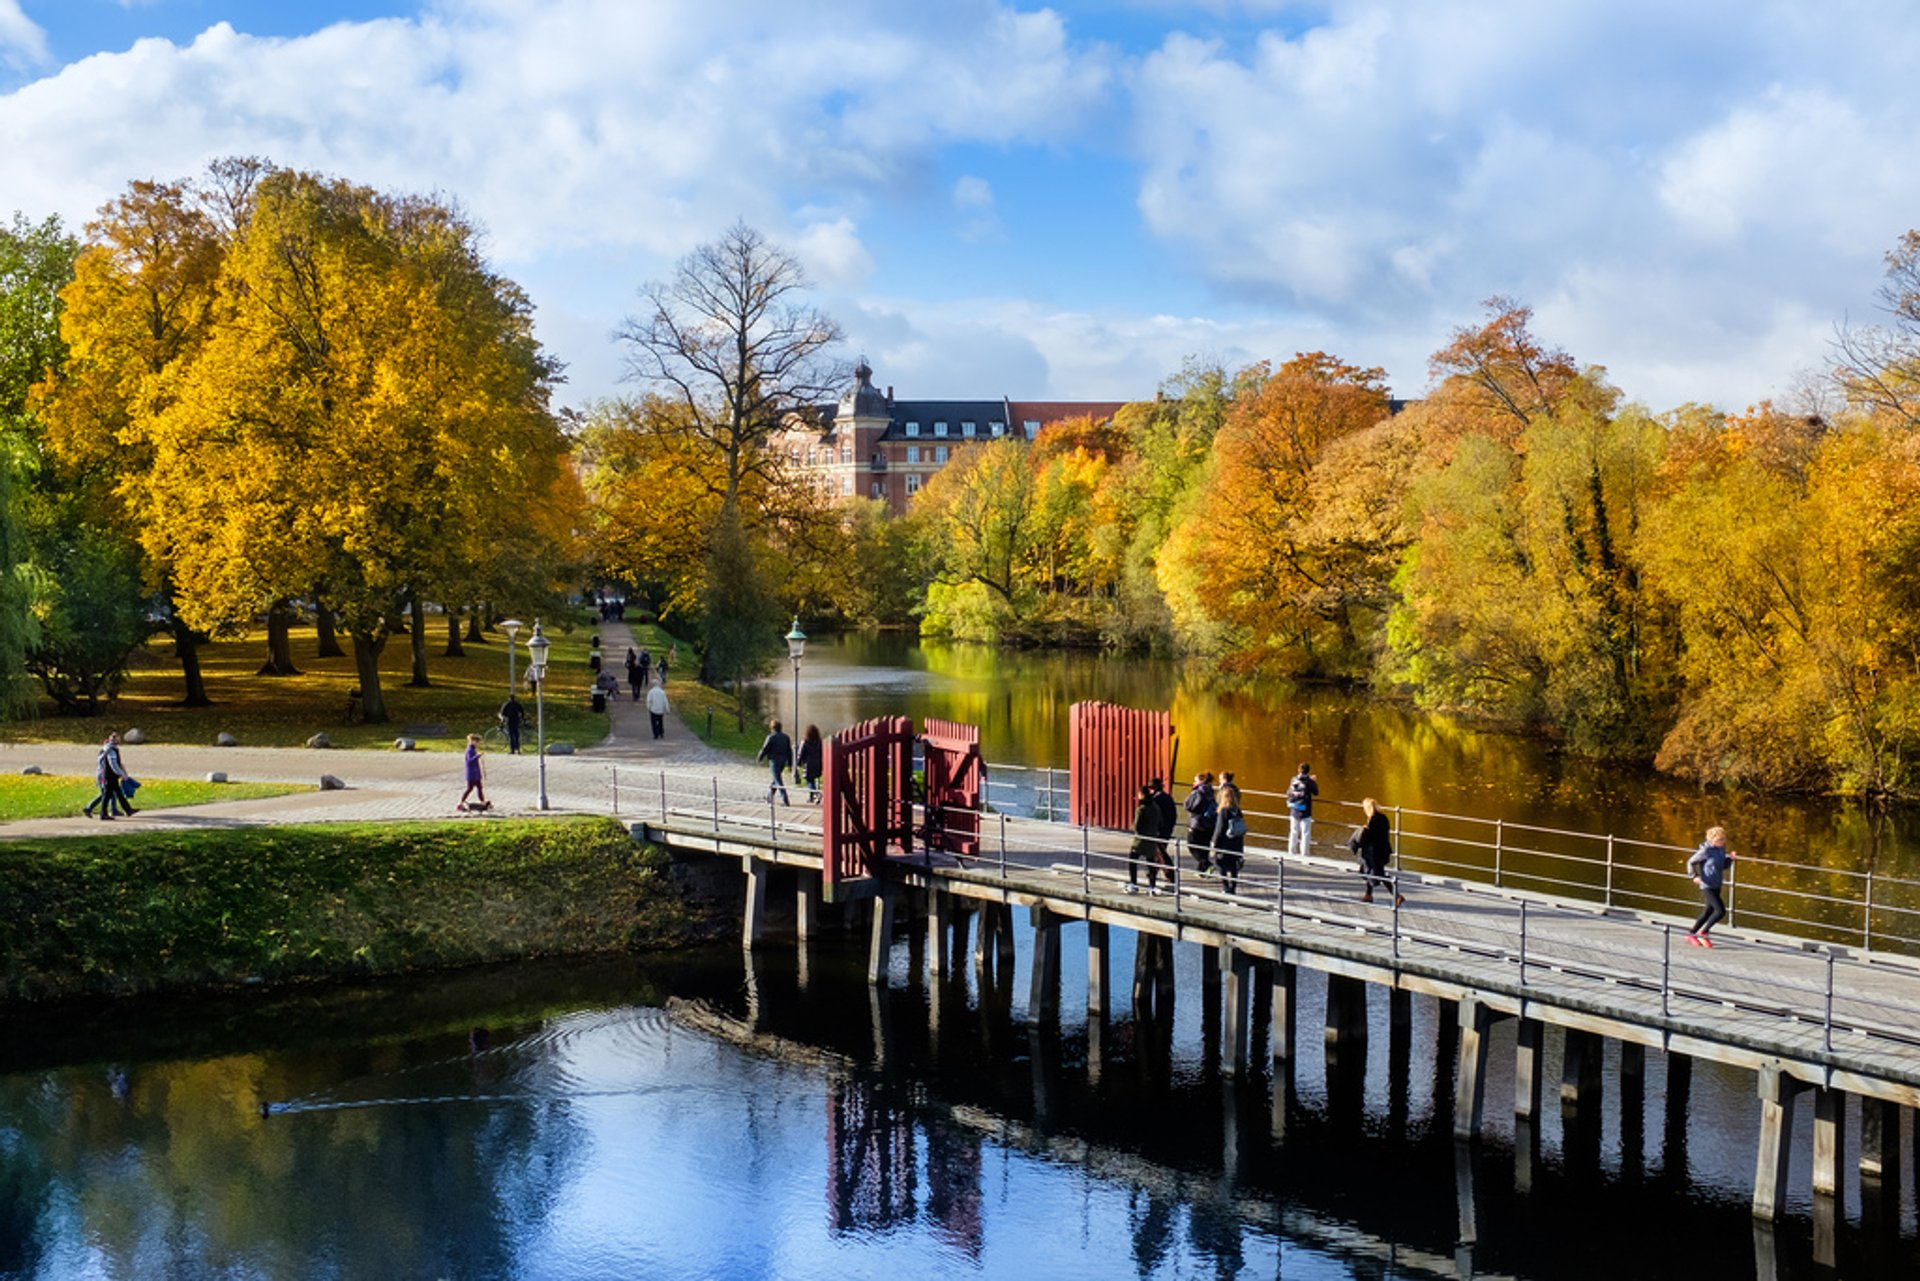 Kastellet in autumn 2020